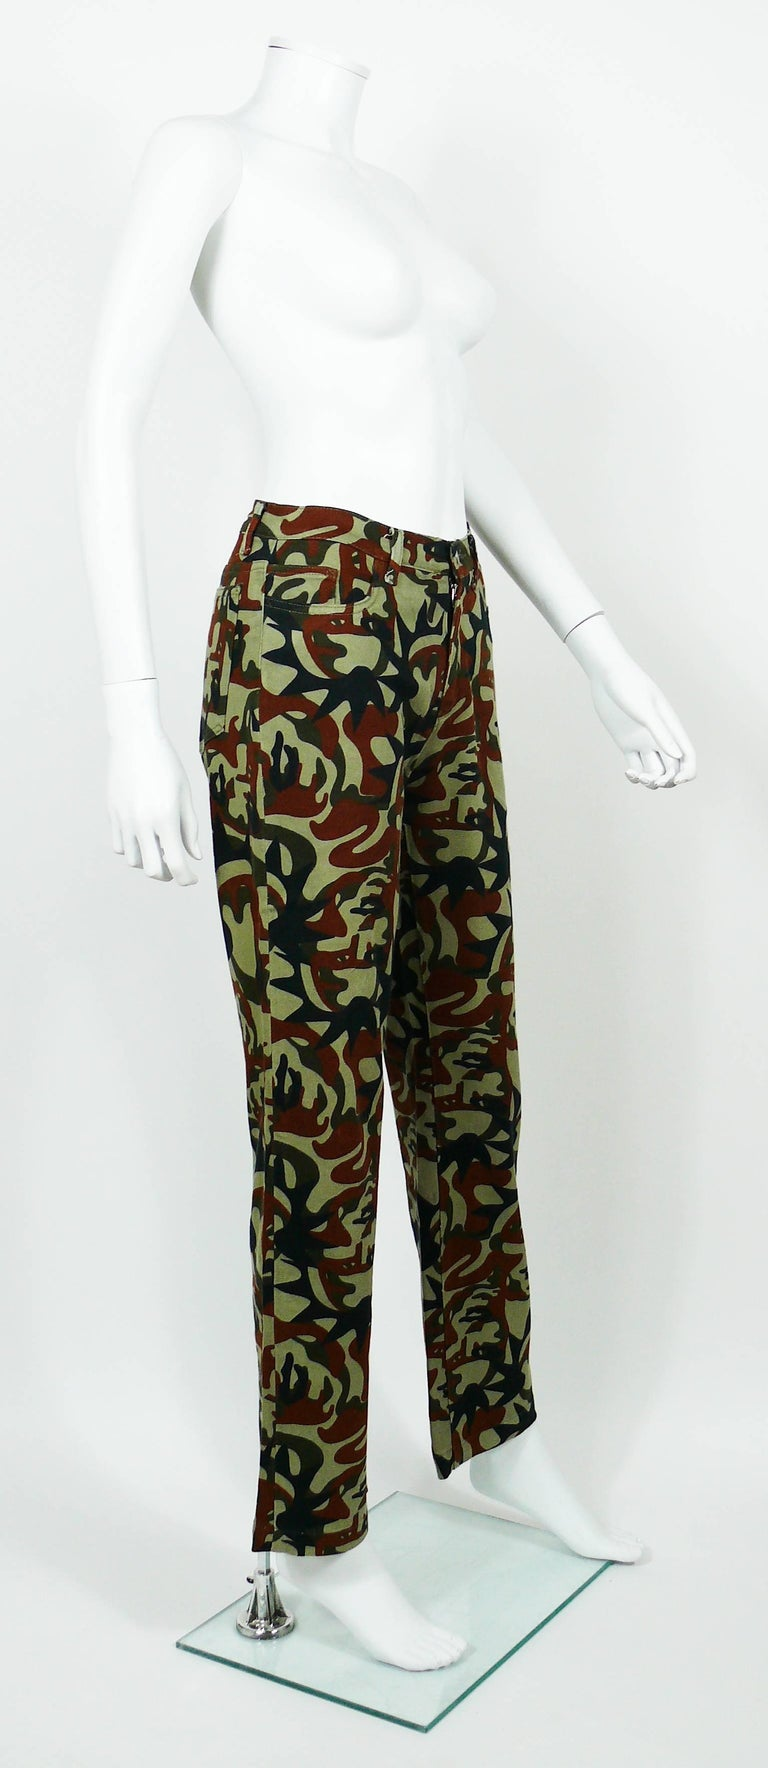 JEAN PAUL GAULTIER vintage pants trousers featuring a camouflage design with faces.  These trousers feature : - Stretchy fabric. - Front zip closure. - Front and back pockets. - Belt loops and signature brand loop at the back.  Label reads JPG